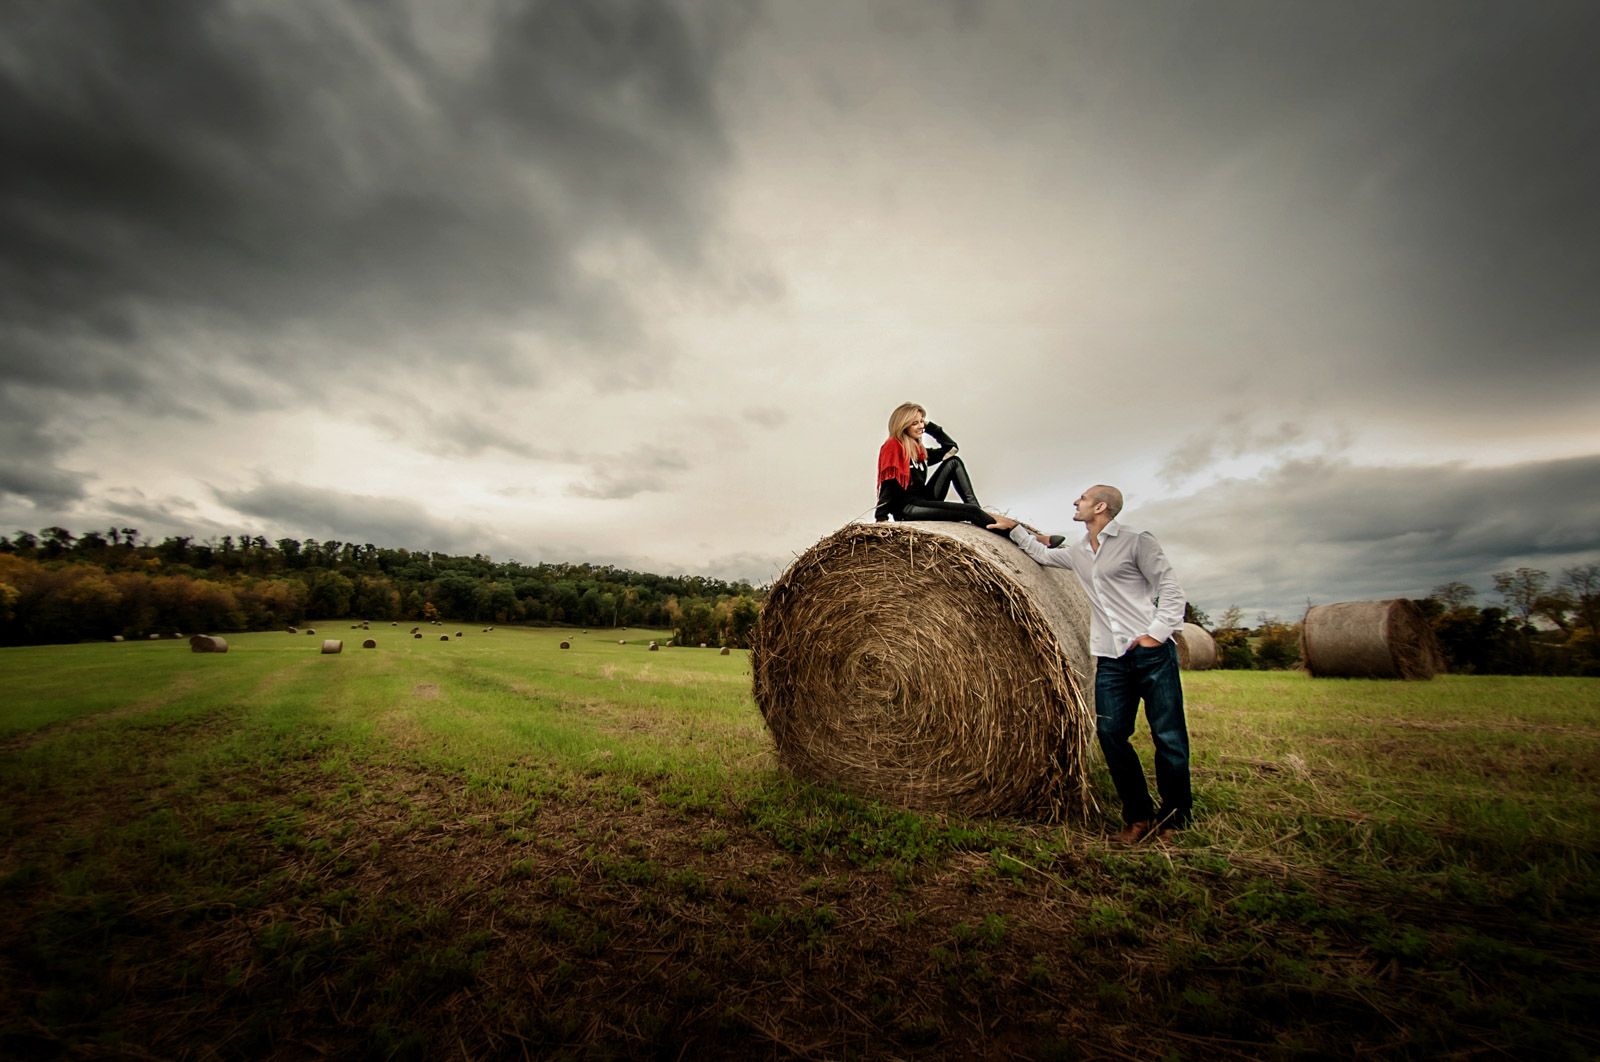 Engagement Session on a bale of hay in a country field